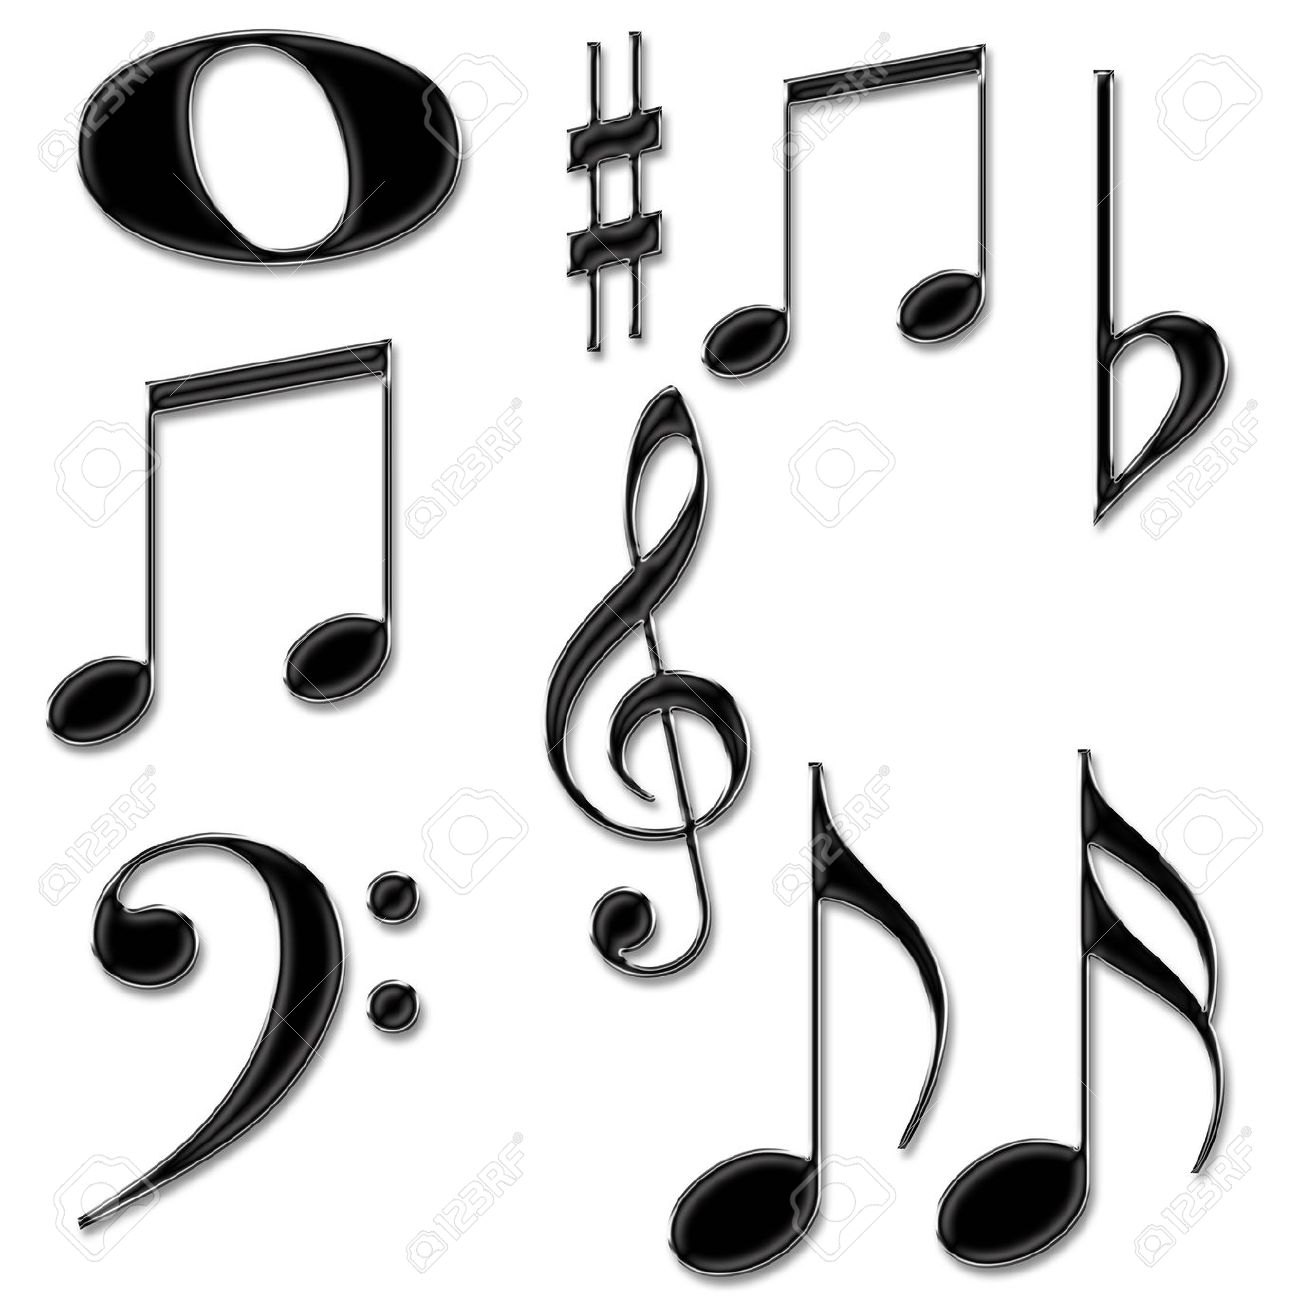 Music notes symbols isolated on a white background stock photo music notes symbols isolated on a white background stock photo 10752001 biocorpaavc Image collections